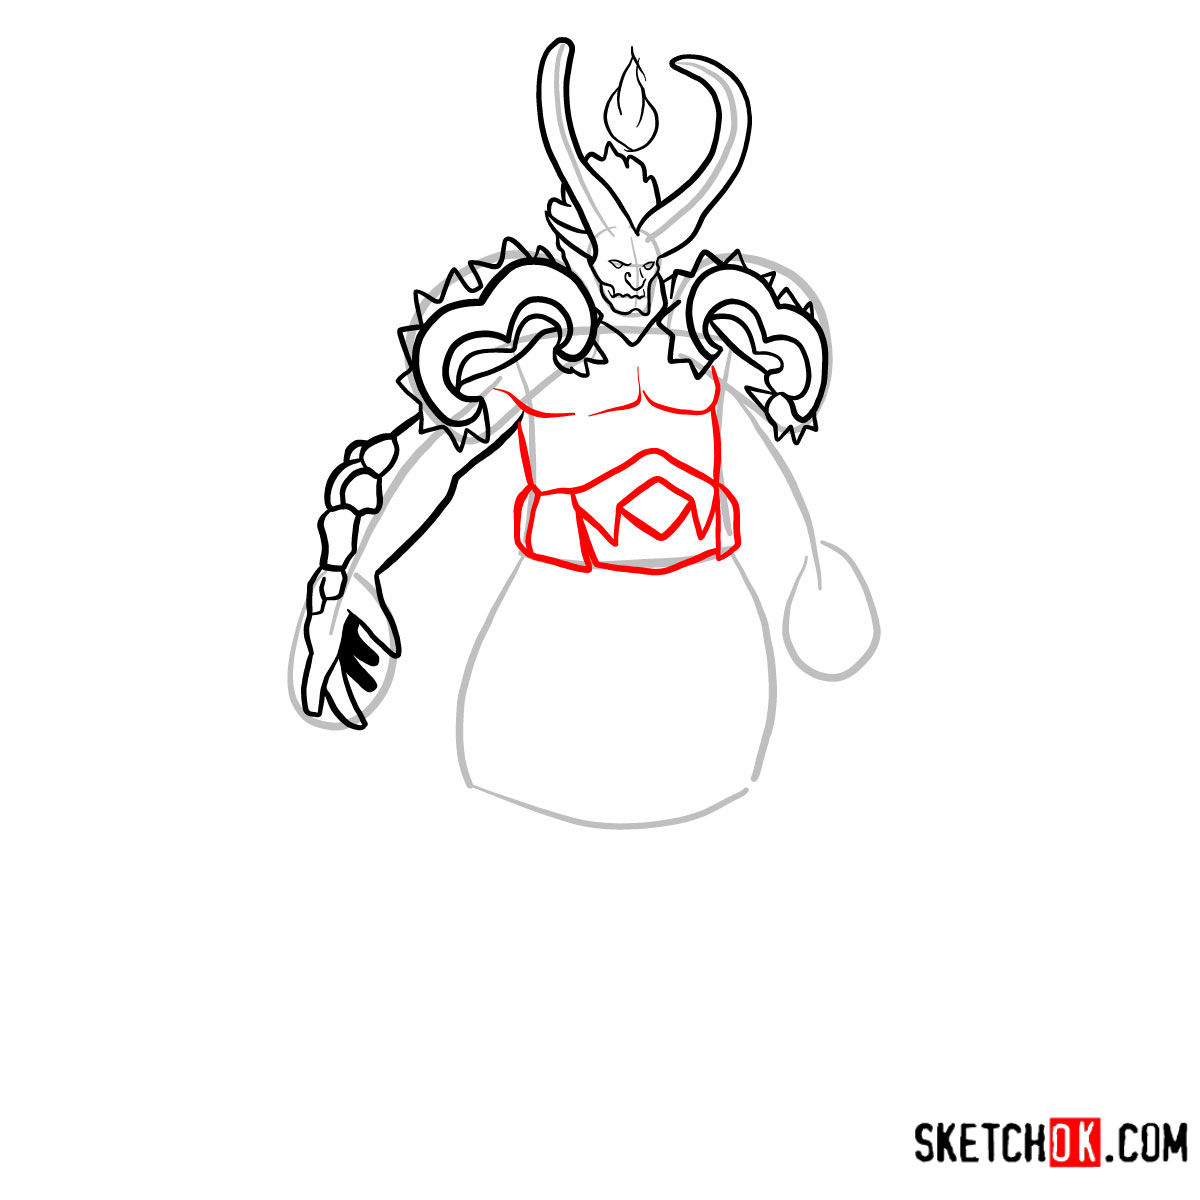 How to draw Sargeras | World of Warcraft - step 09